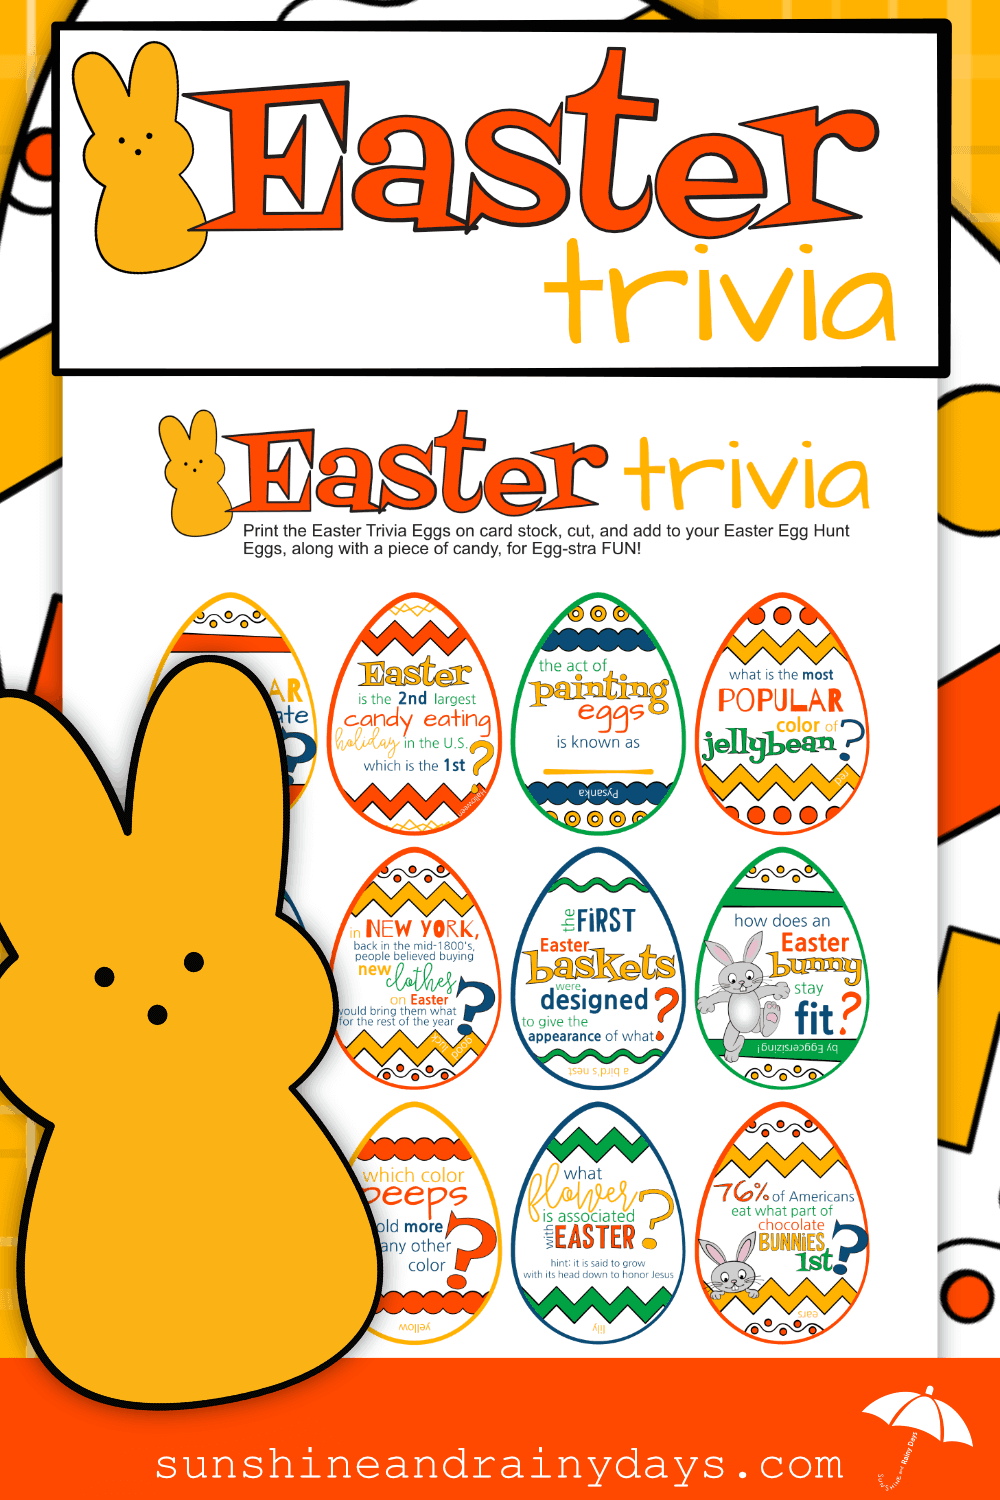 Easter Trivia to put in Easter Egg Hunt Eggs!